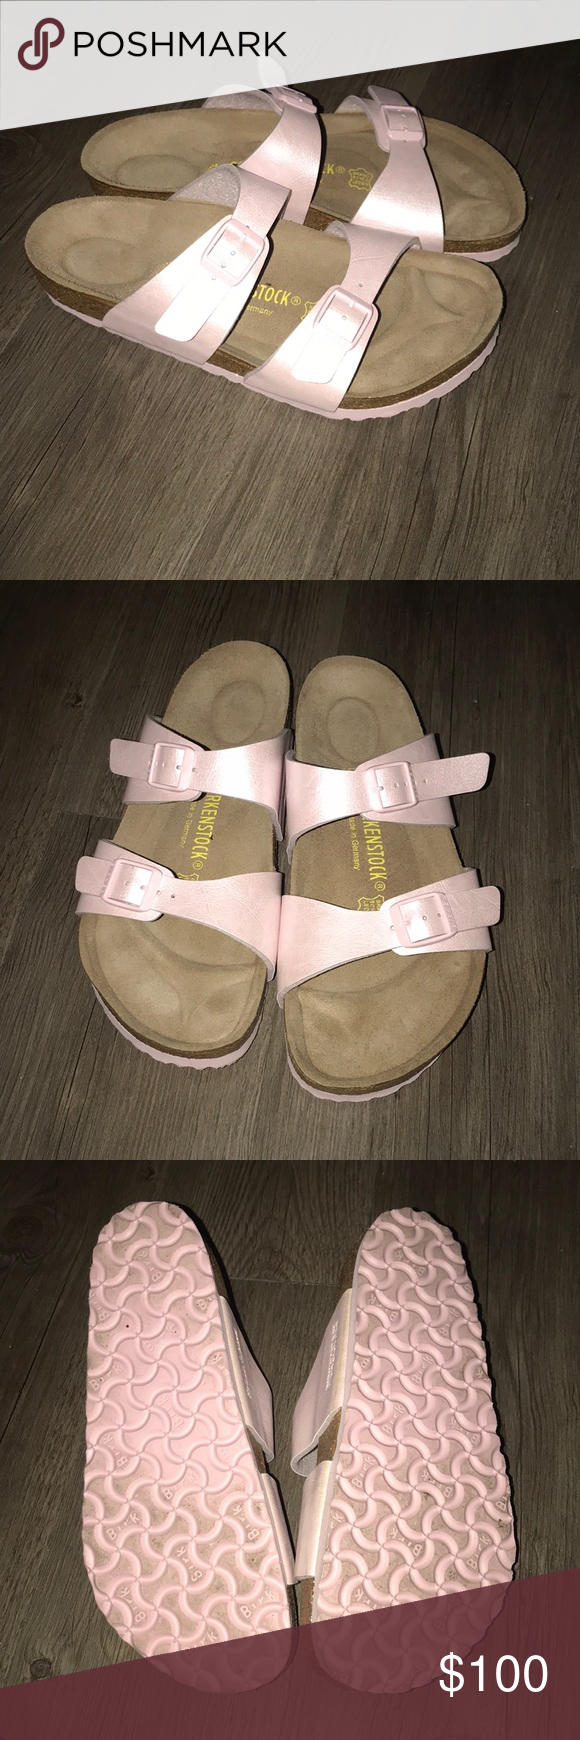 856c4b1ae42b Pale pink Birkenstocks worn once Only worn once too big for me but still  super cute. Open to reasonable trades and offers 🙂 Birkenstock Shoes  Sandals